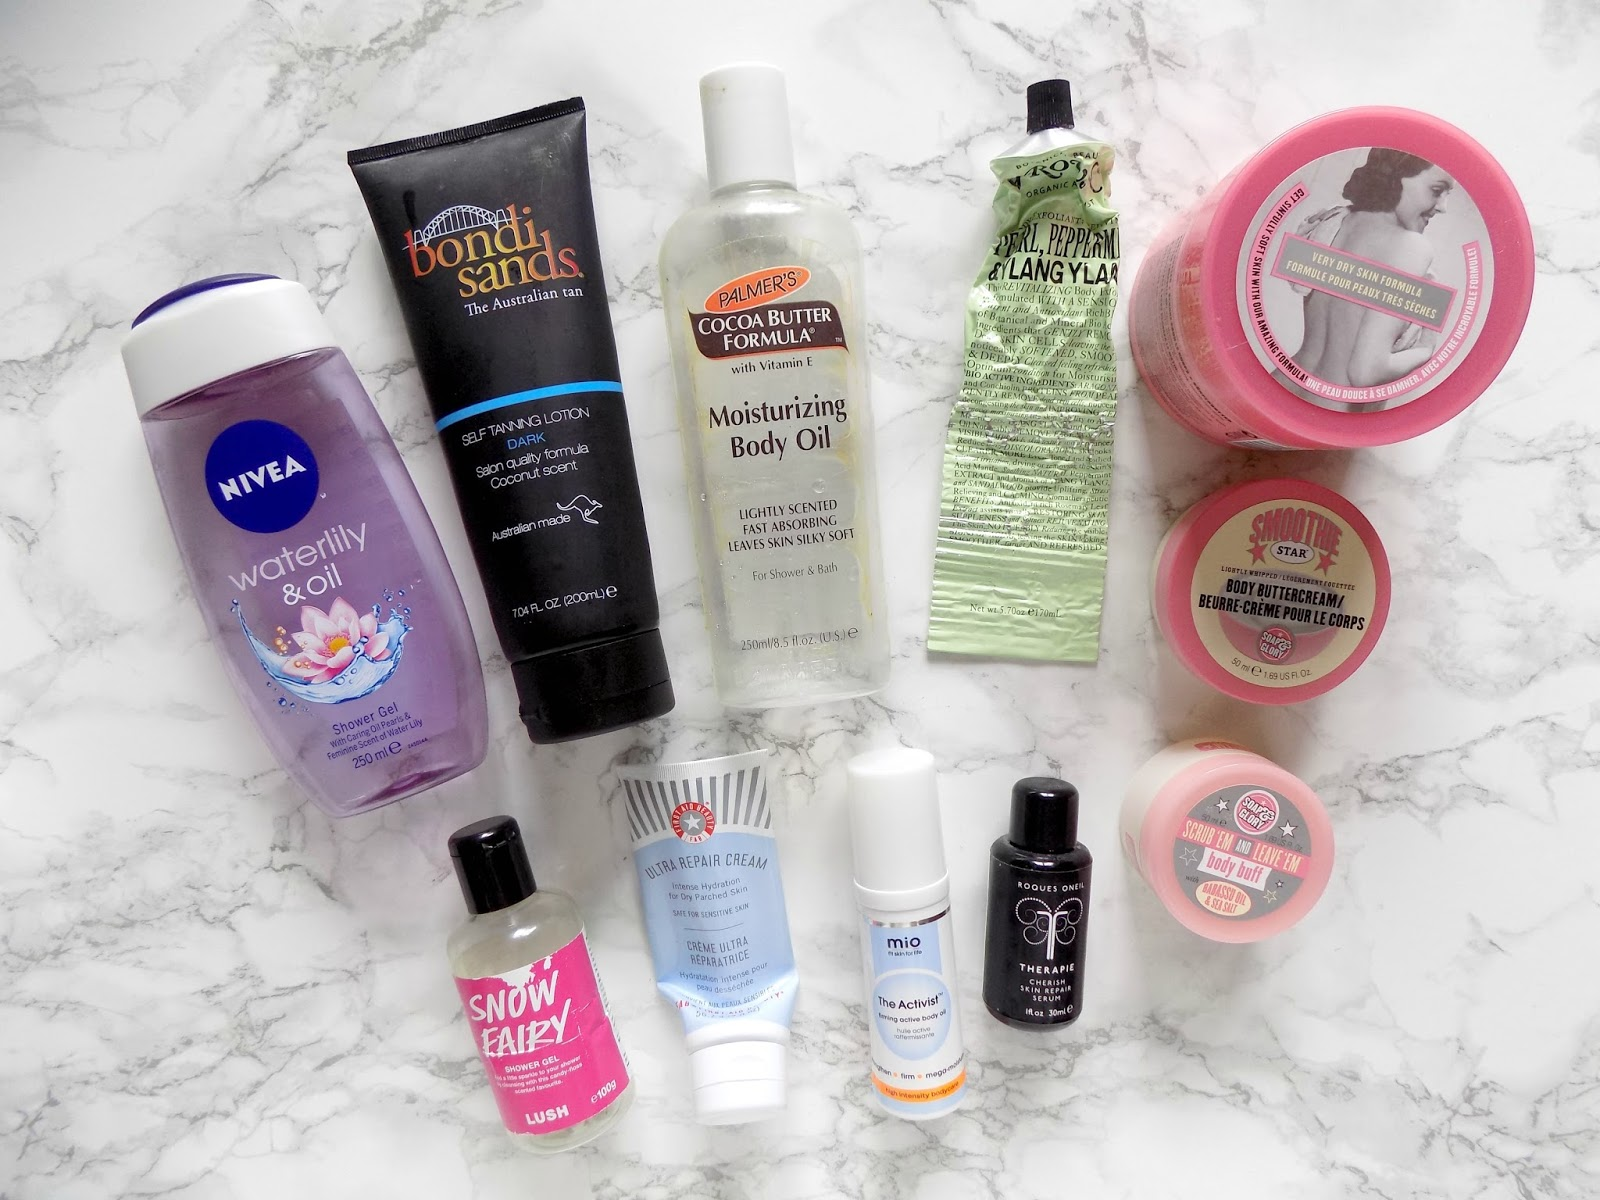 danielles beauty blog body care empties nivea soapa and glory bondi sands